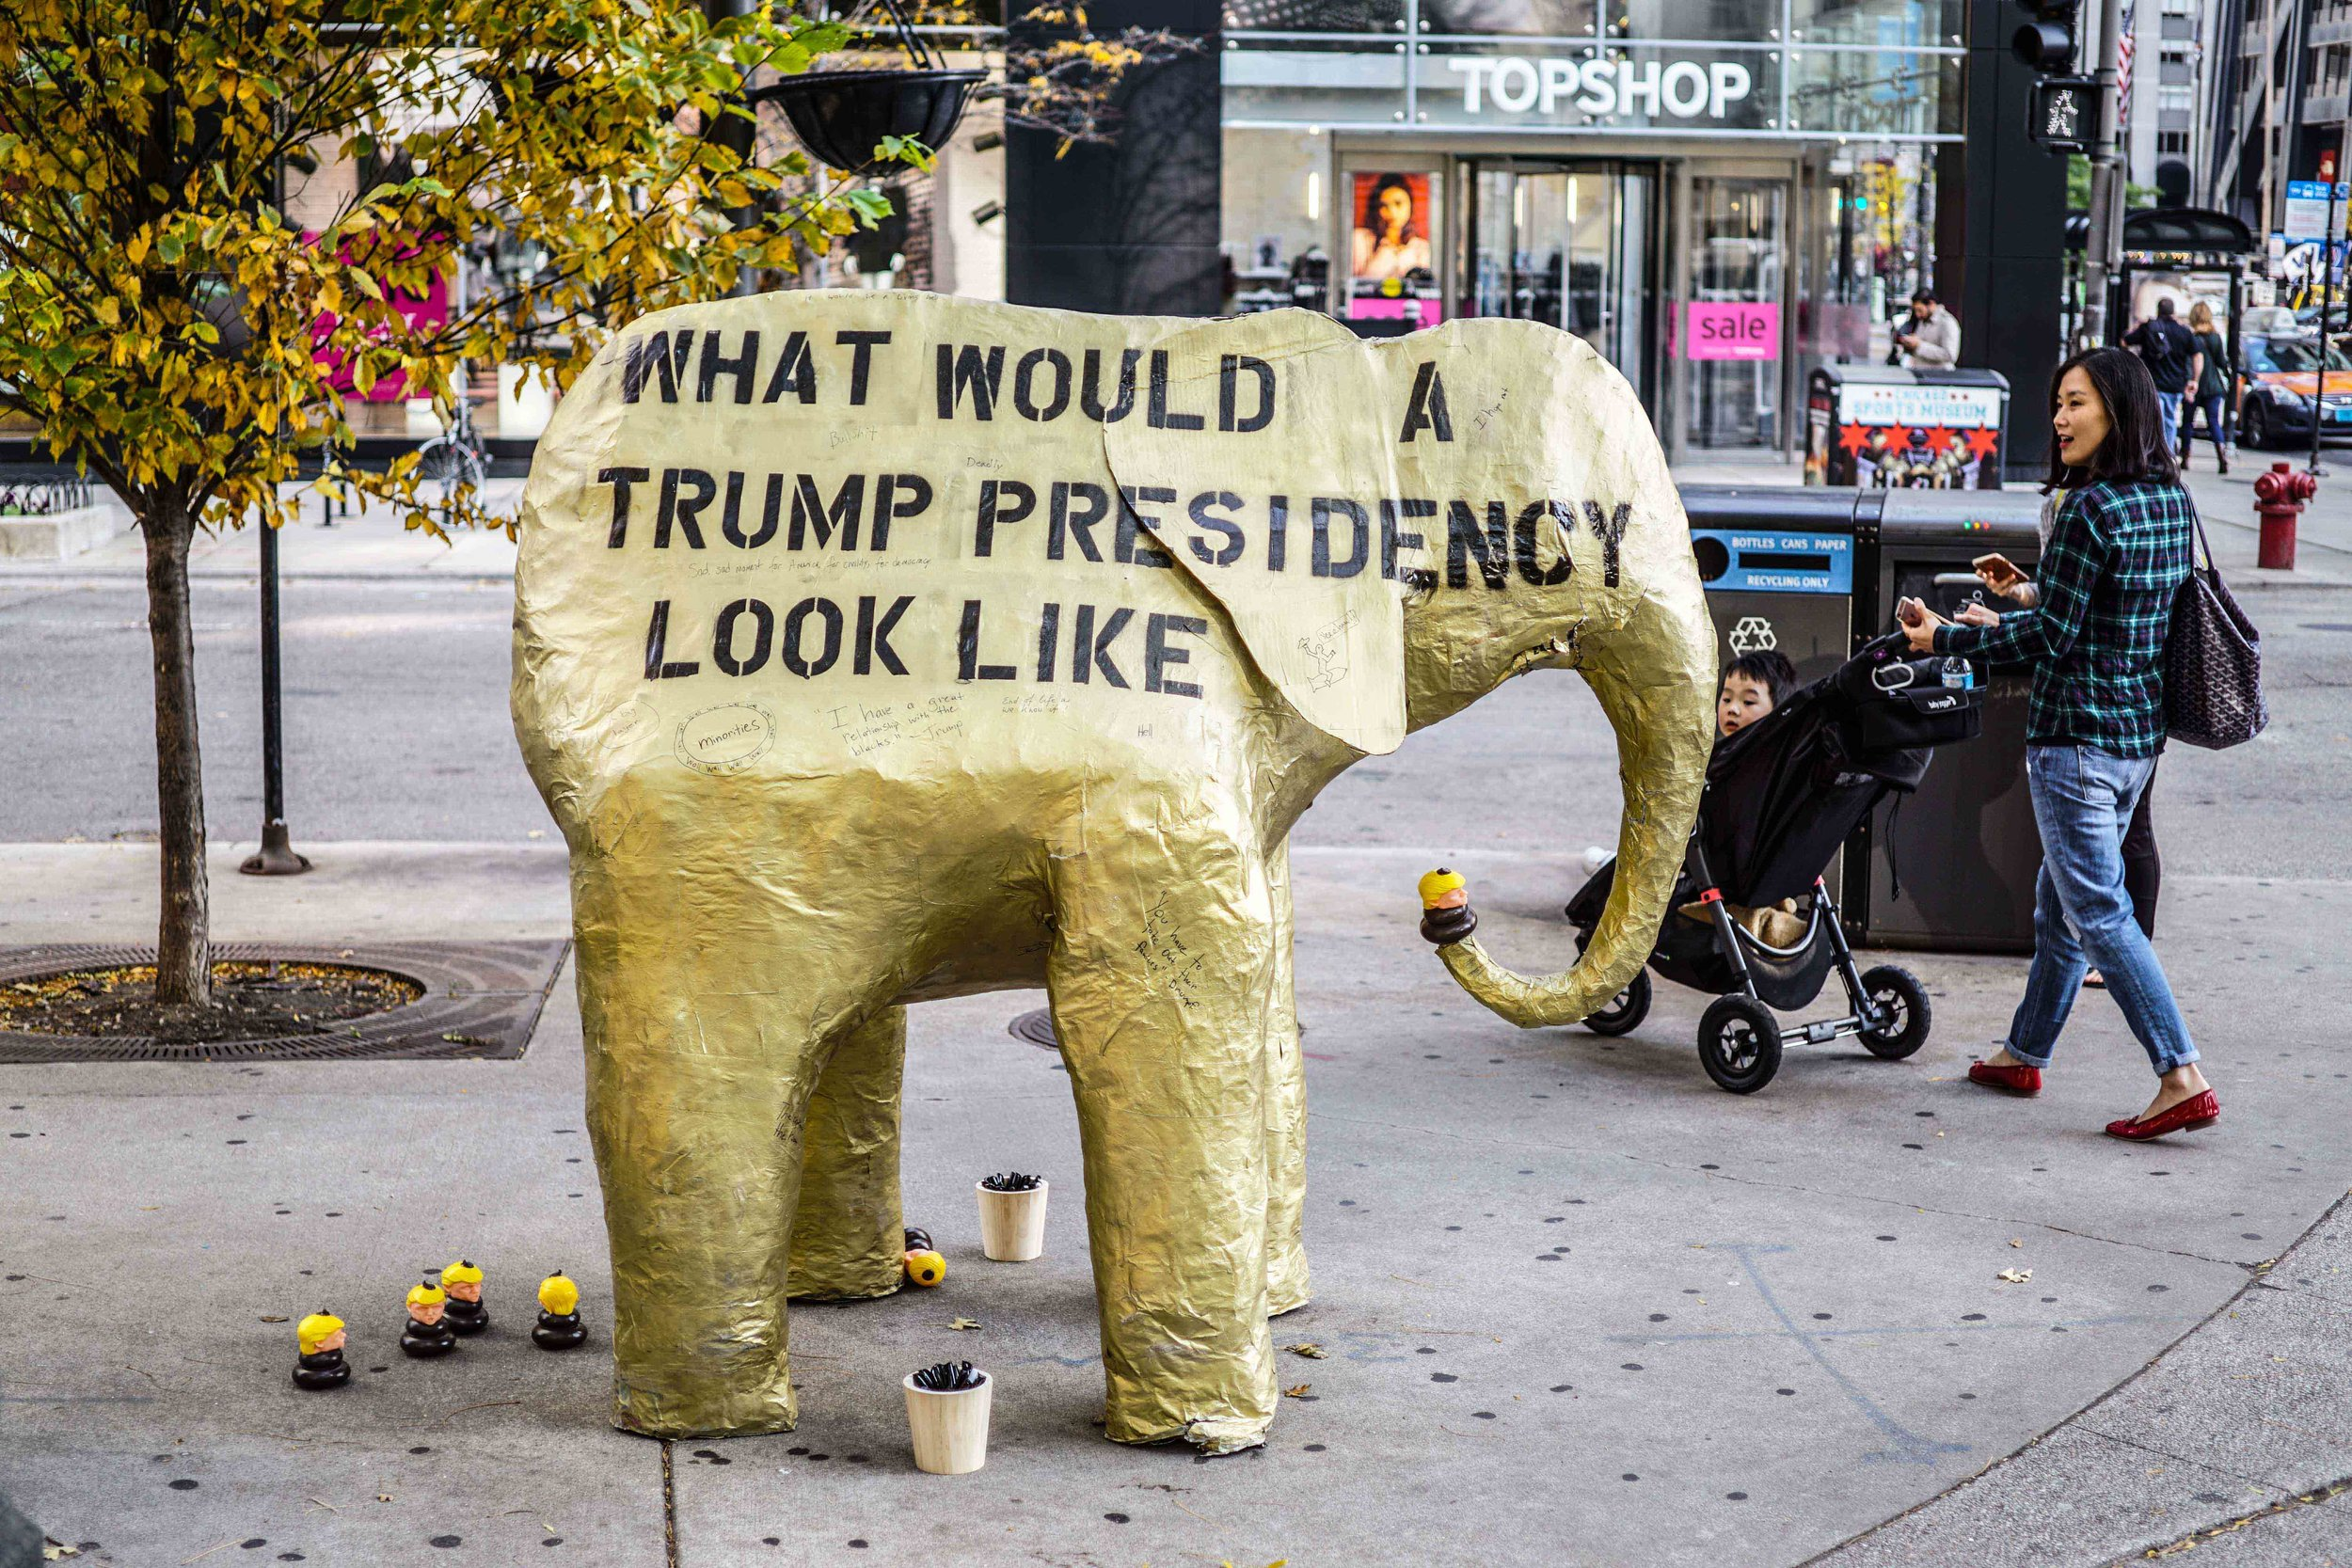 Elephant Golden Trump Pence 2016 2017 Street Art Donnie The Poo Polotical Art Donald Trump Piece of shit 2017 Birch Reincliff Banksy Shepard Fairey Art 15.jpg